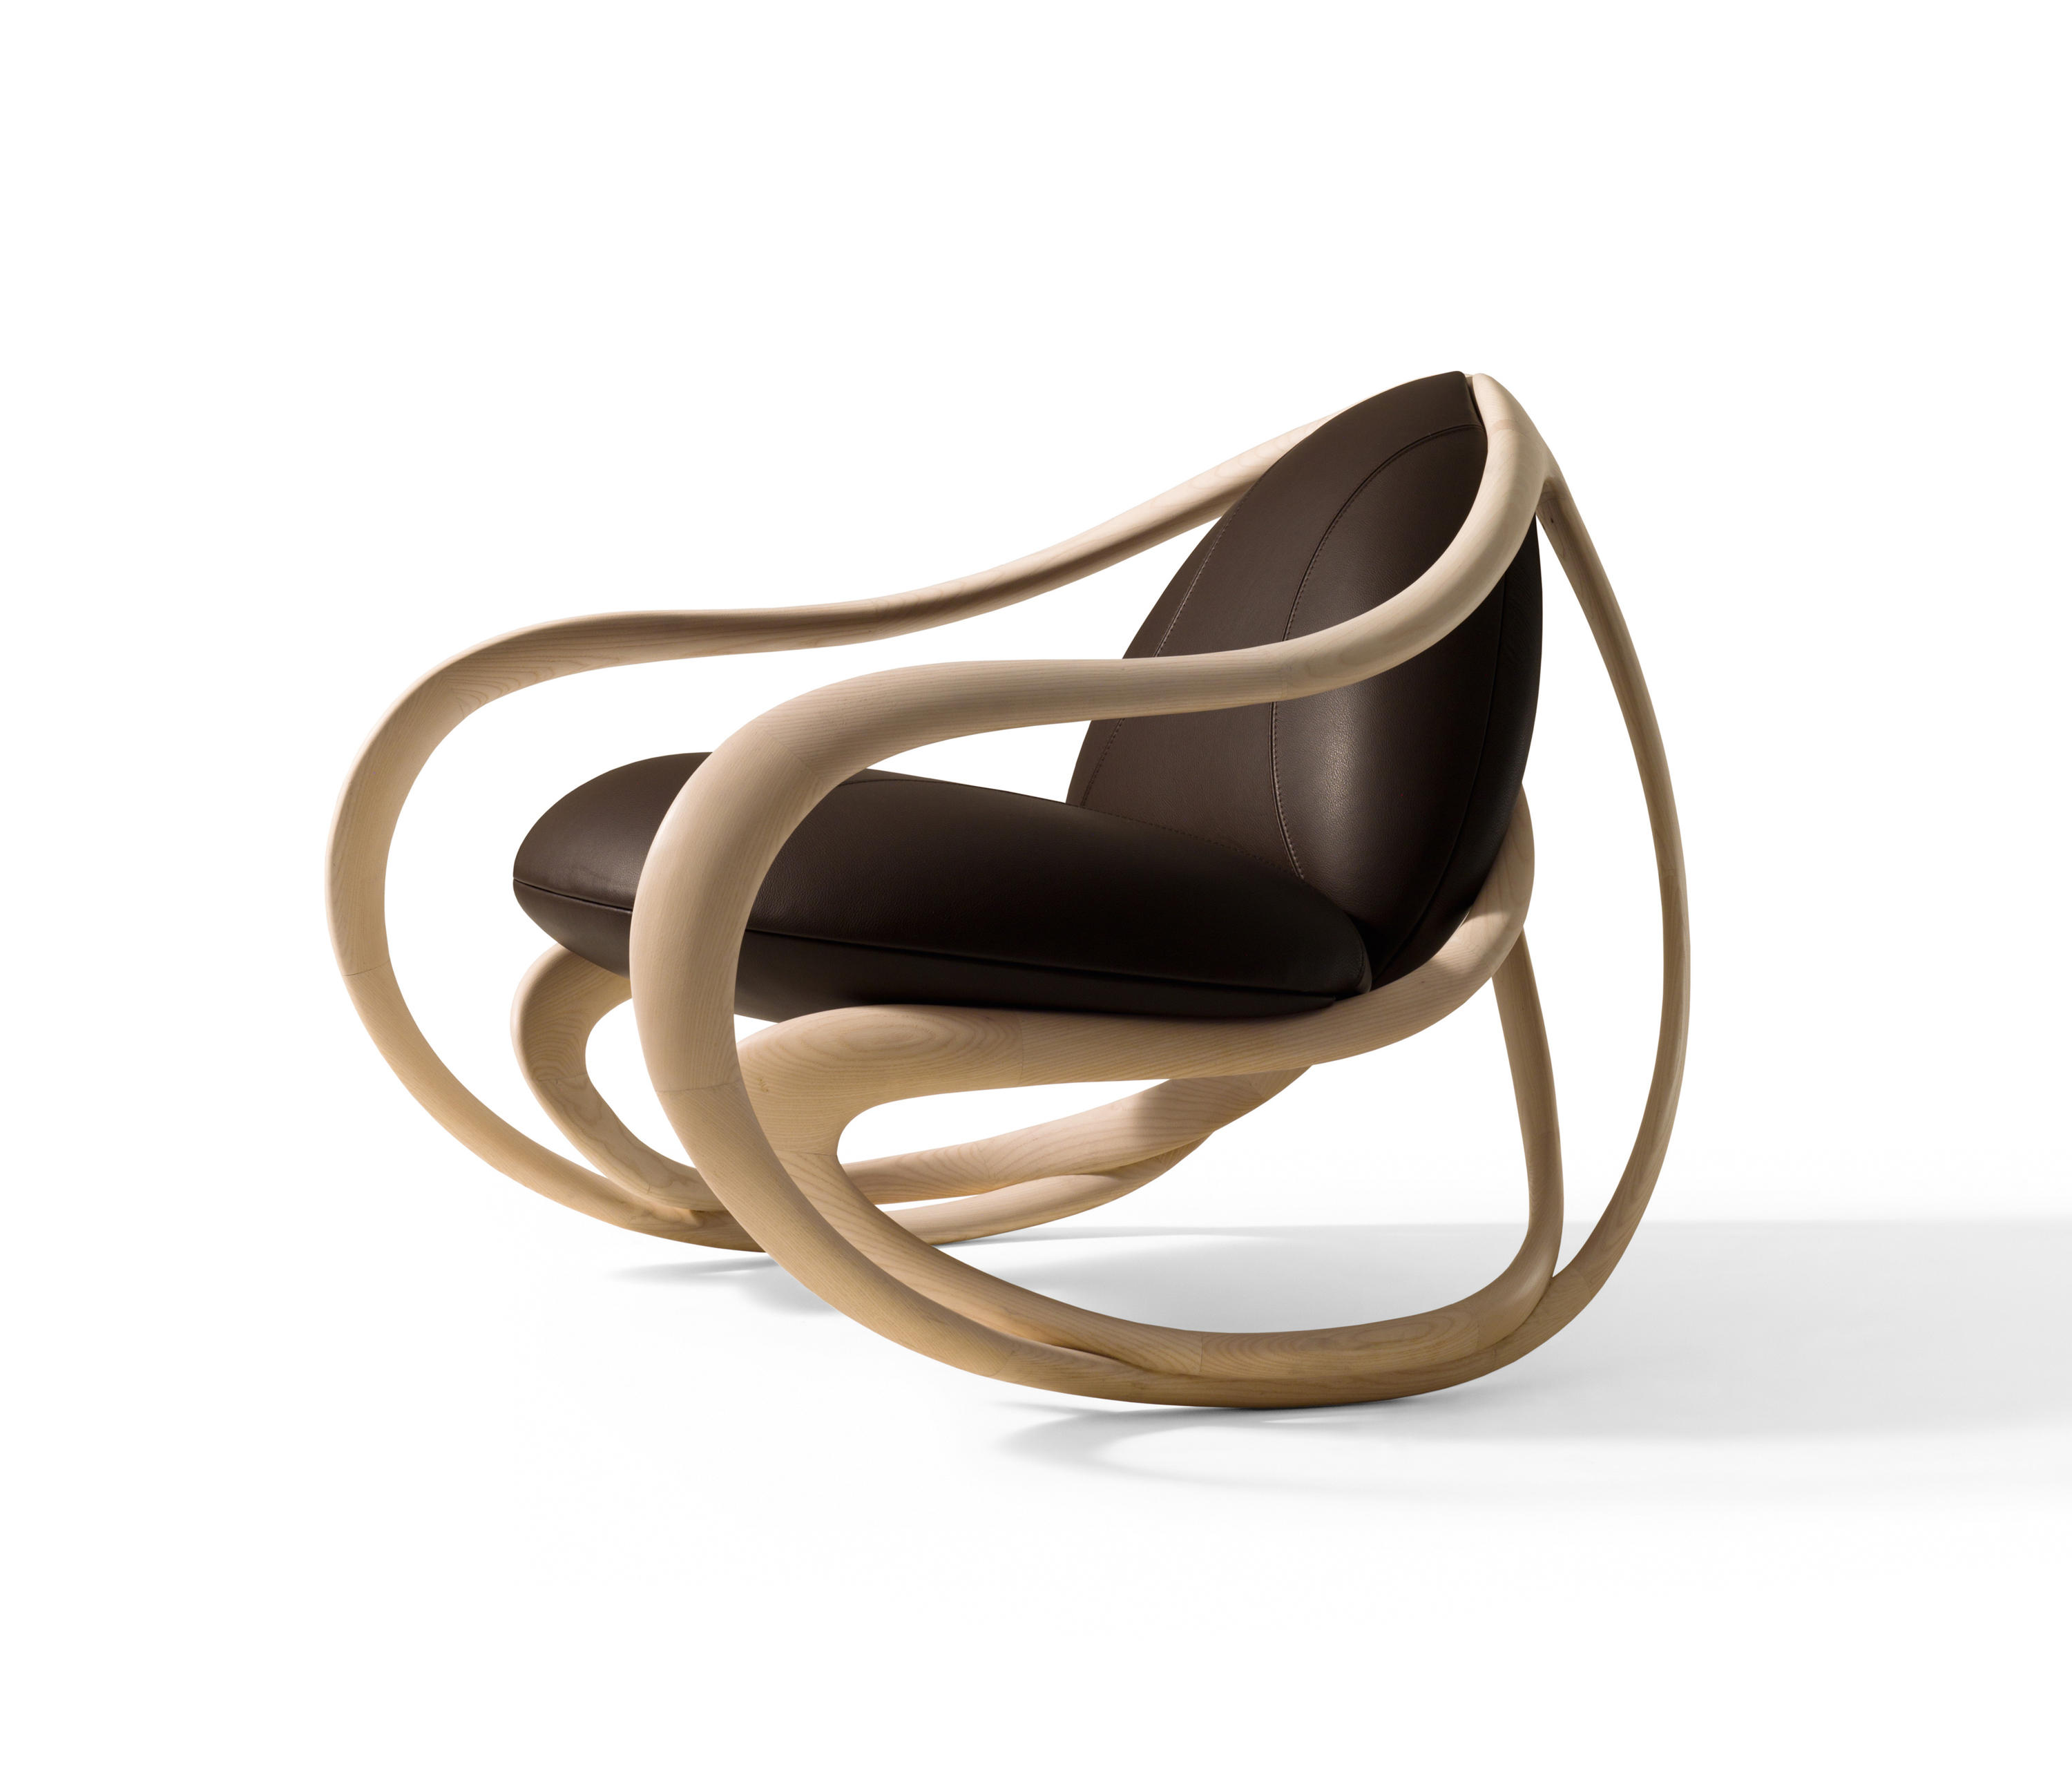 Move Rocking Armchair Lounge Chairs From Giorgetti